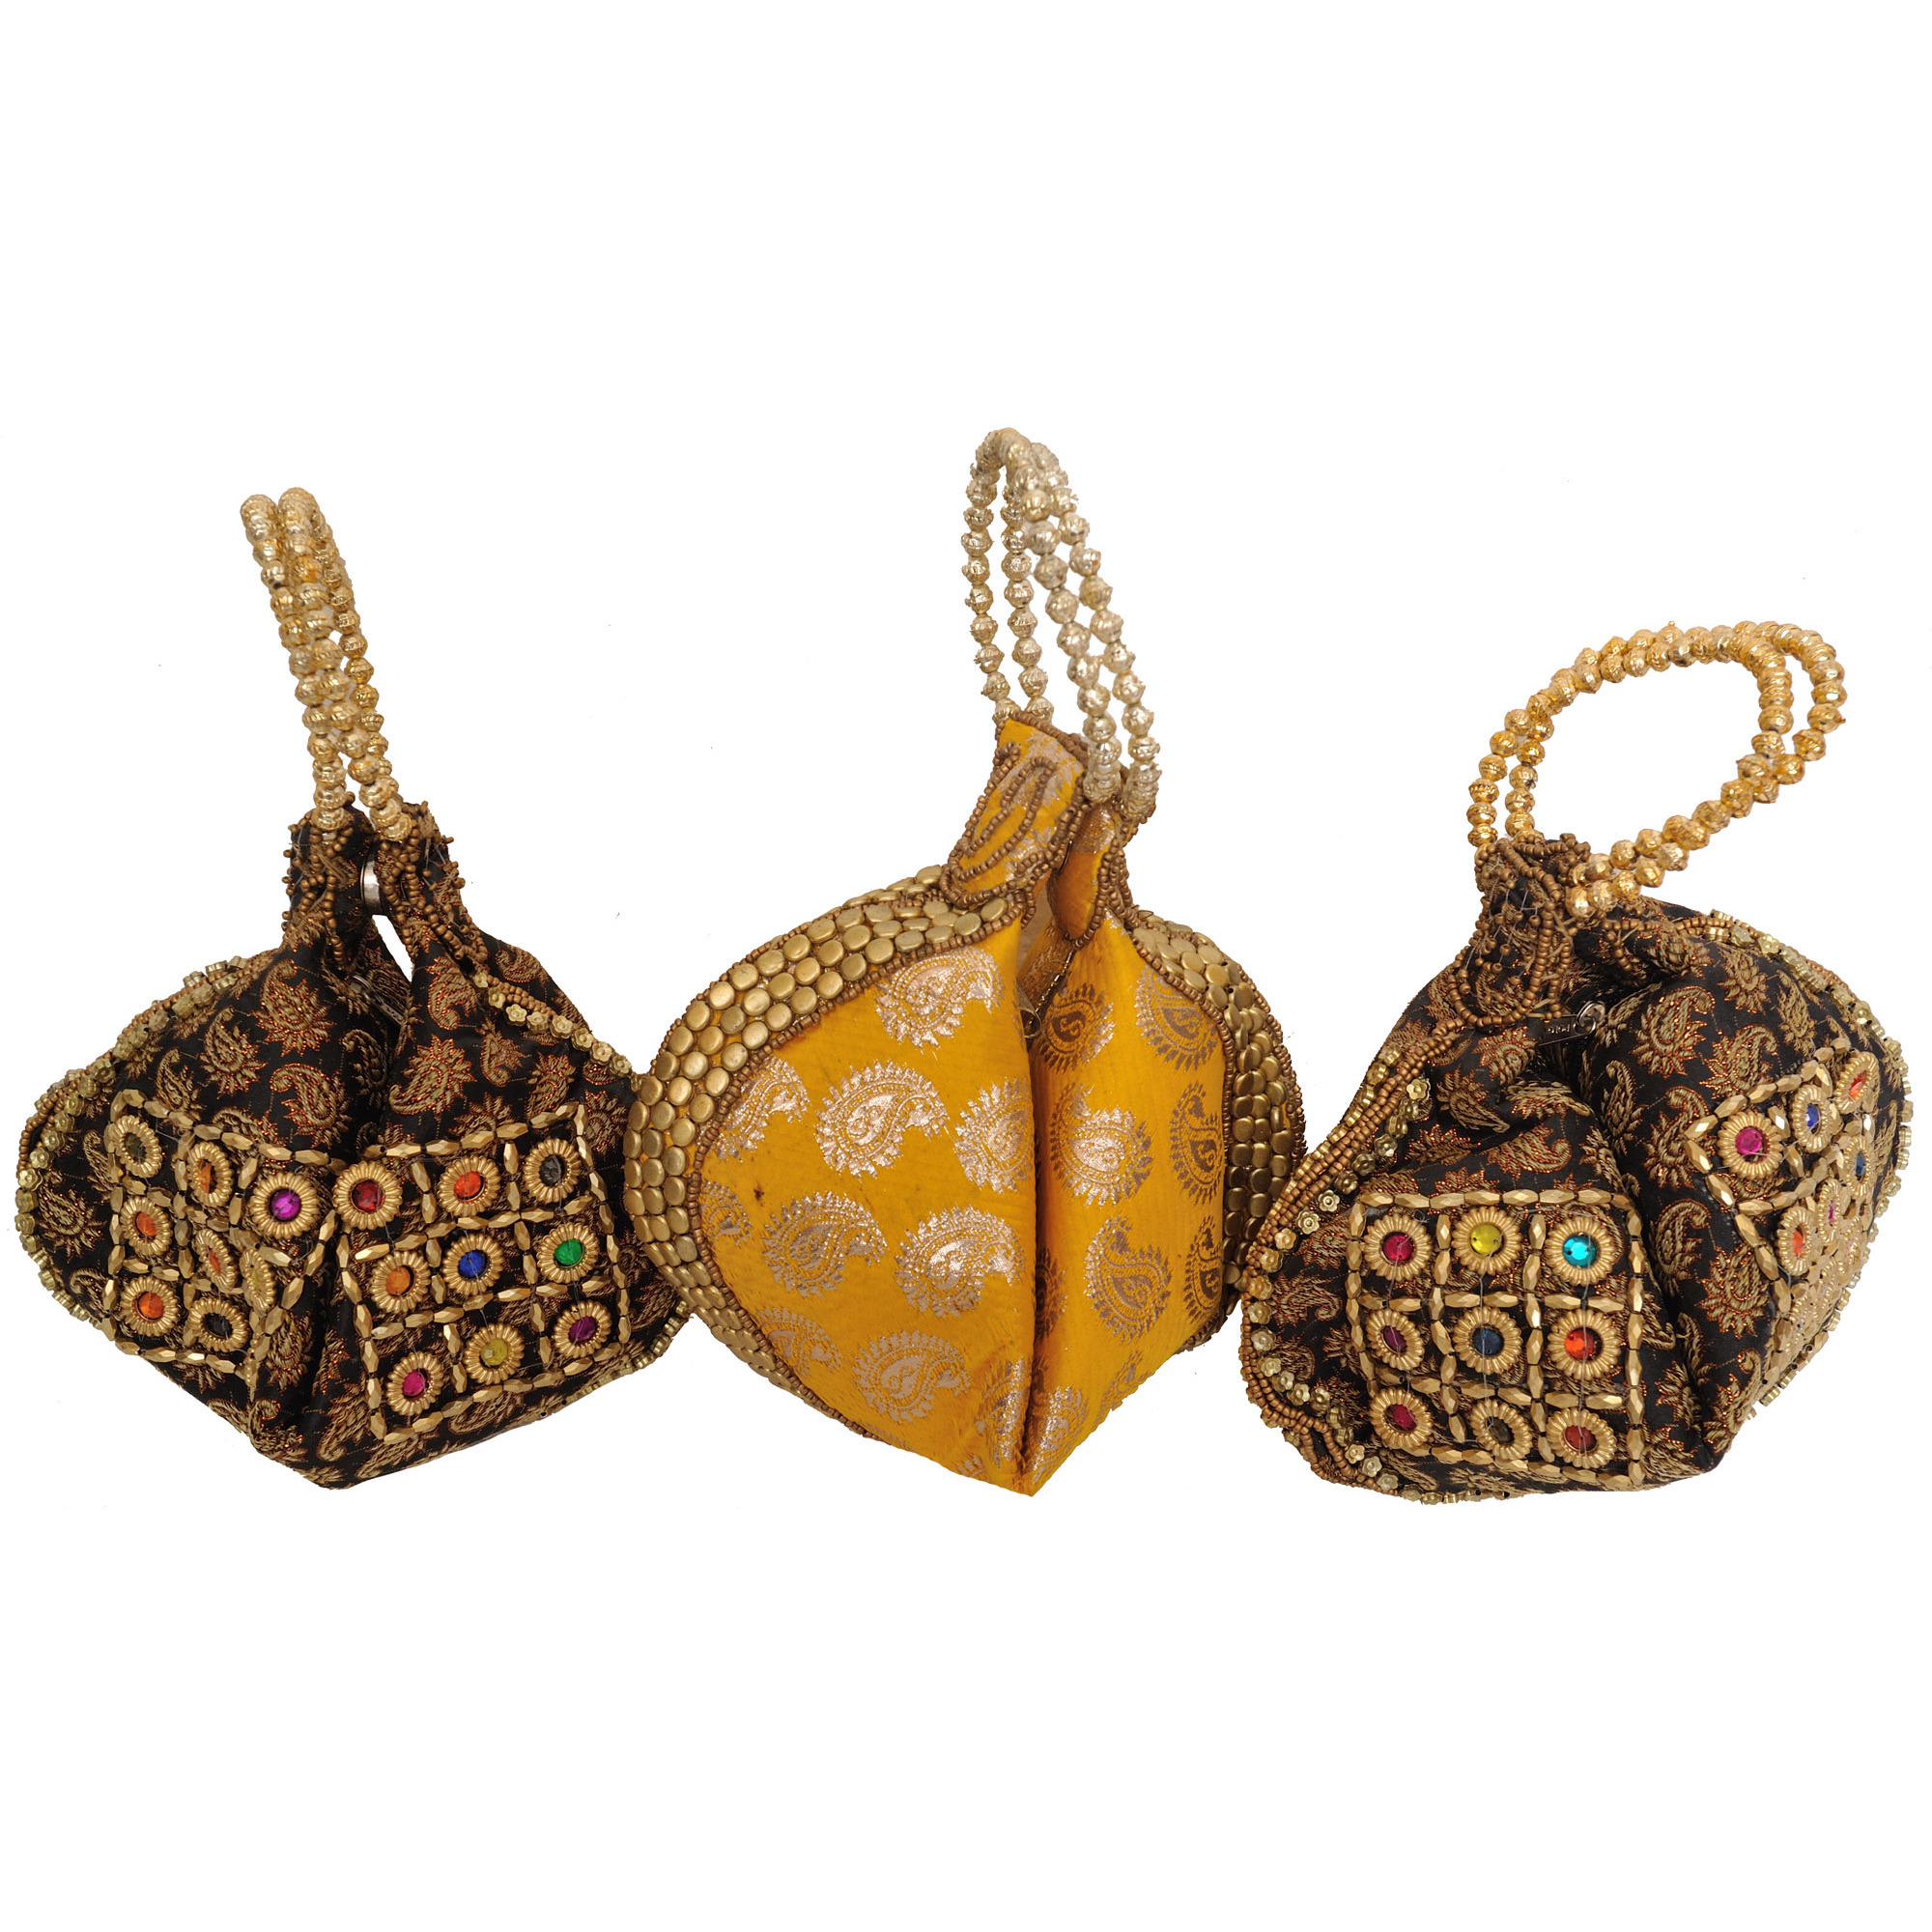 Lot of Three Bracelet Bags with Brocade Weave and Beadwork